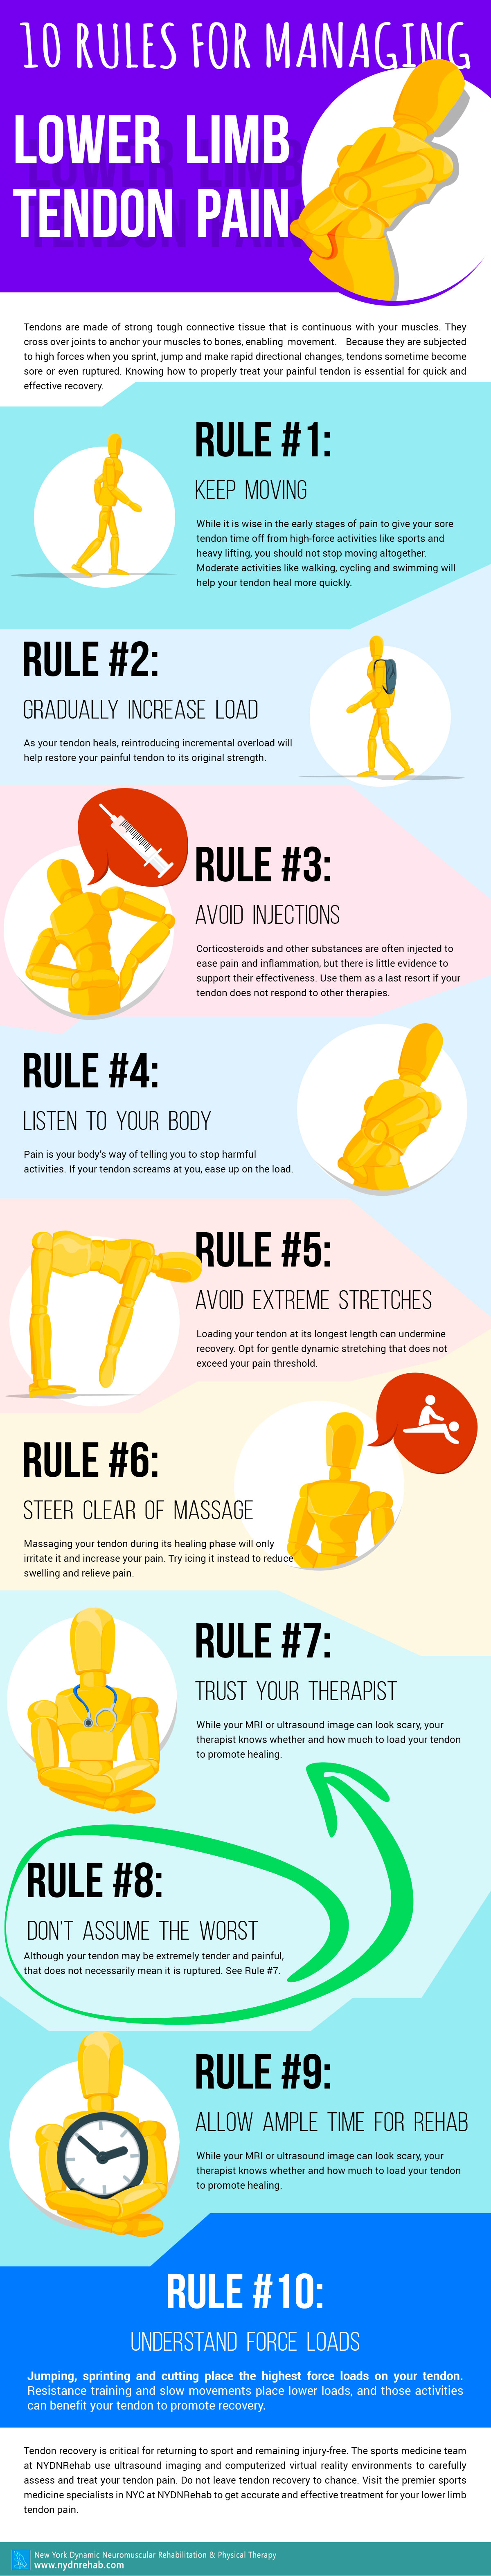 10-Rules-for-Managing-Lower-Limb-Tendon-Pain-infographic-plaza